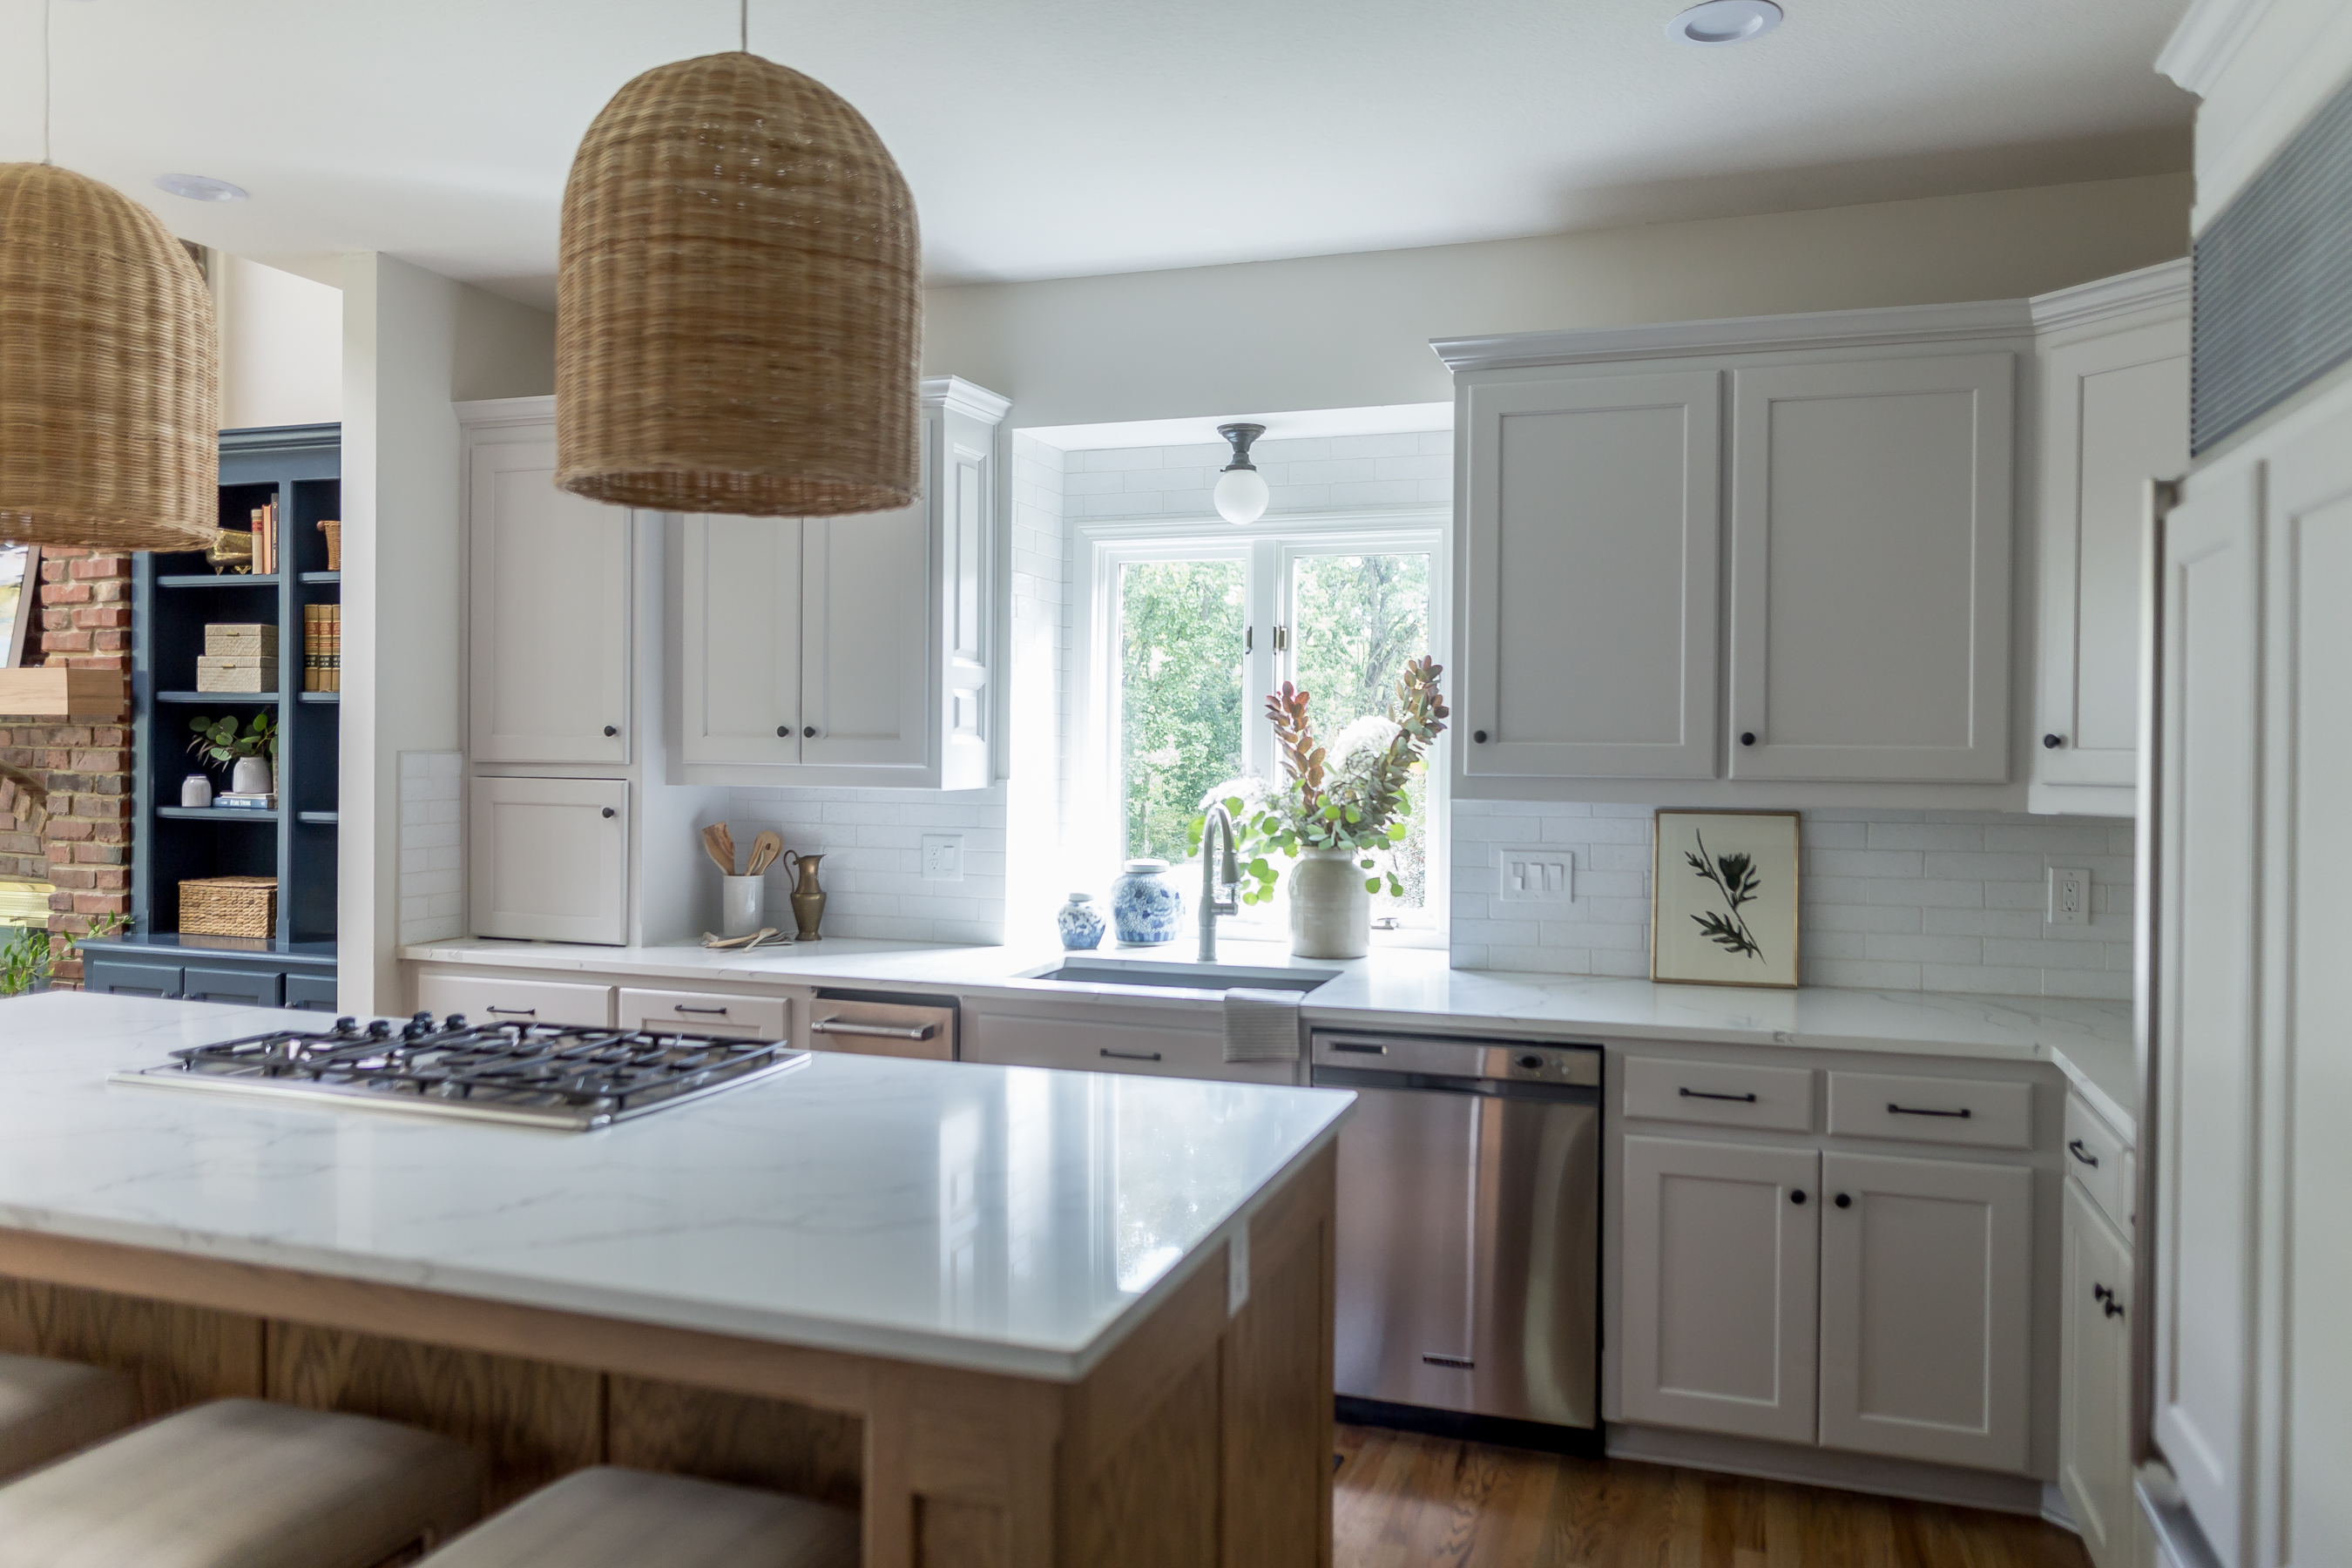 light gray cabinets with oak island, woven pendant lights, quartz countertops